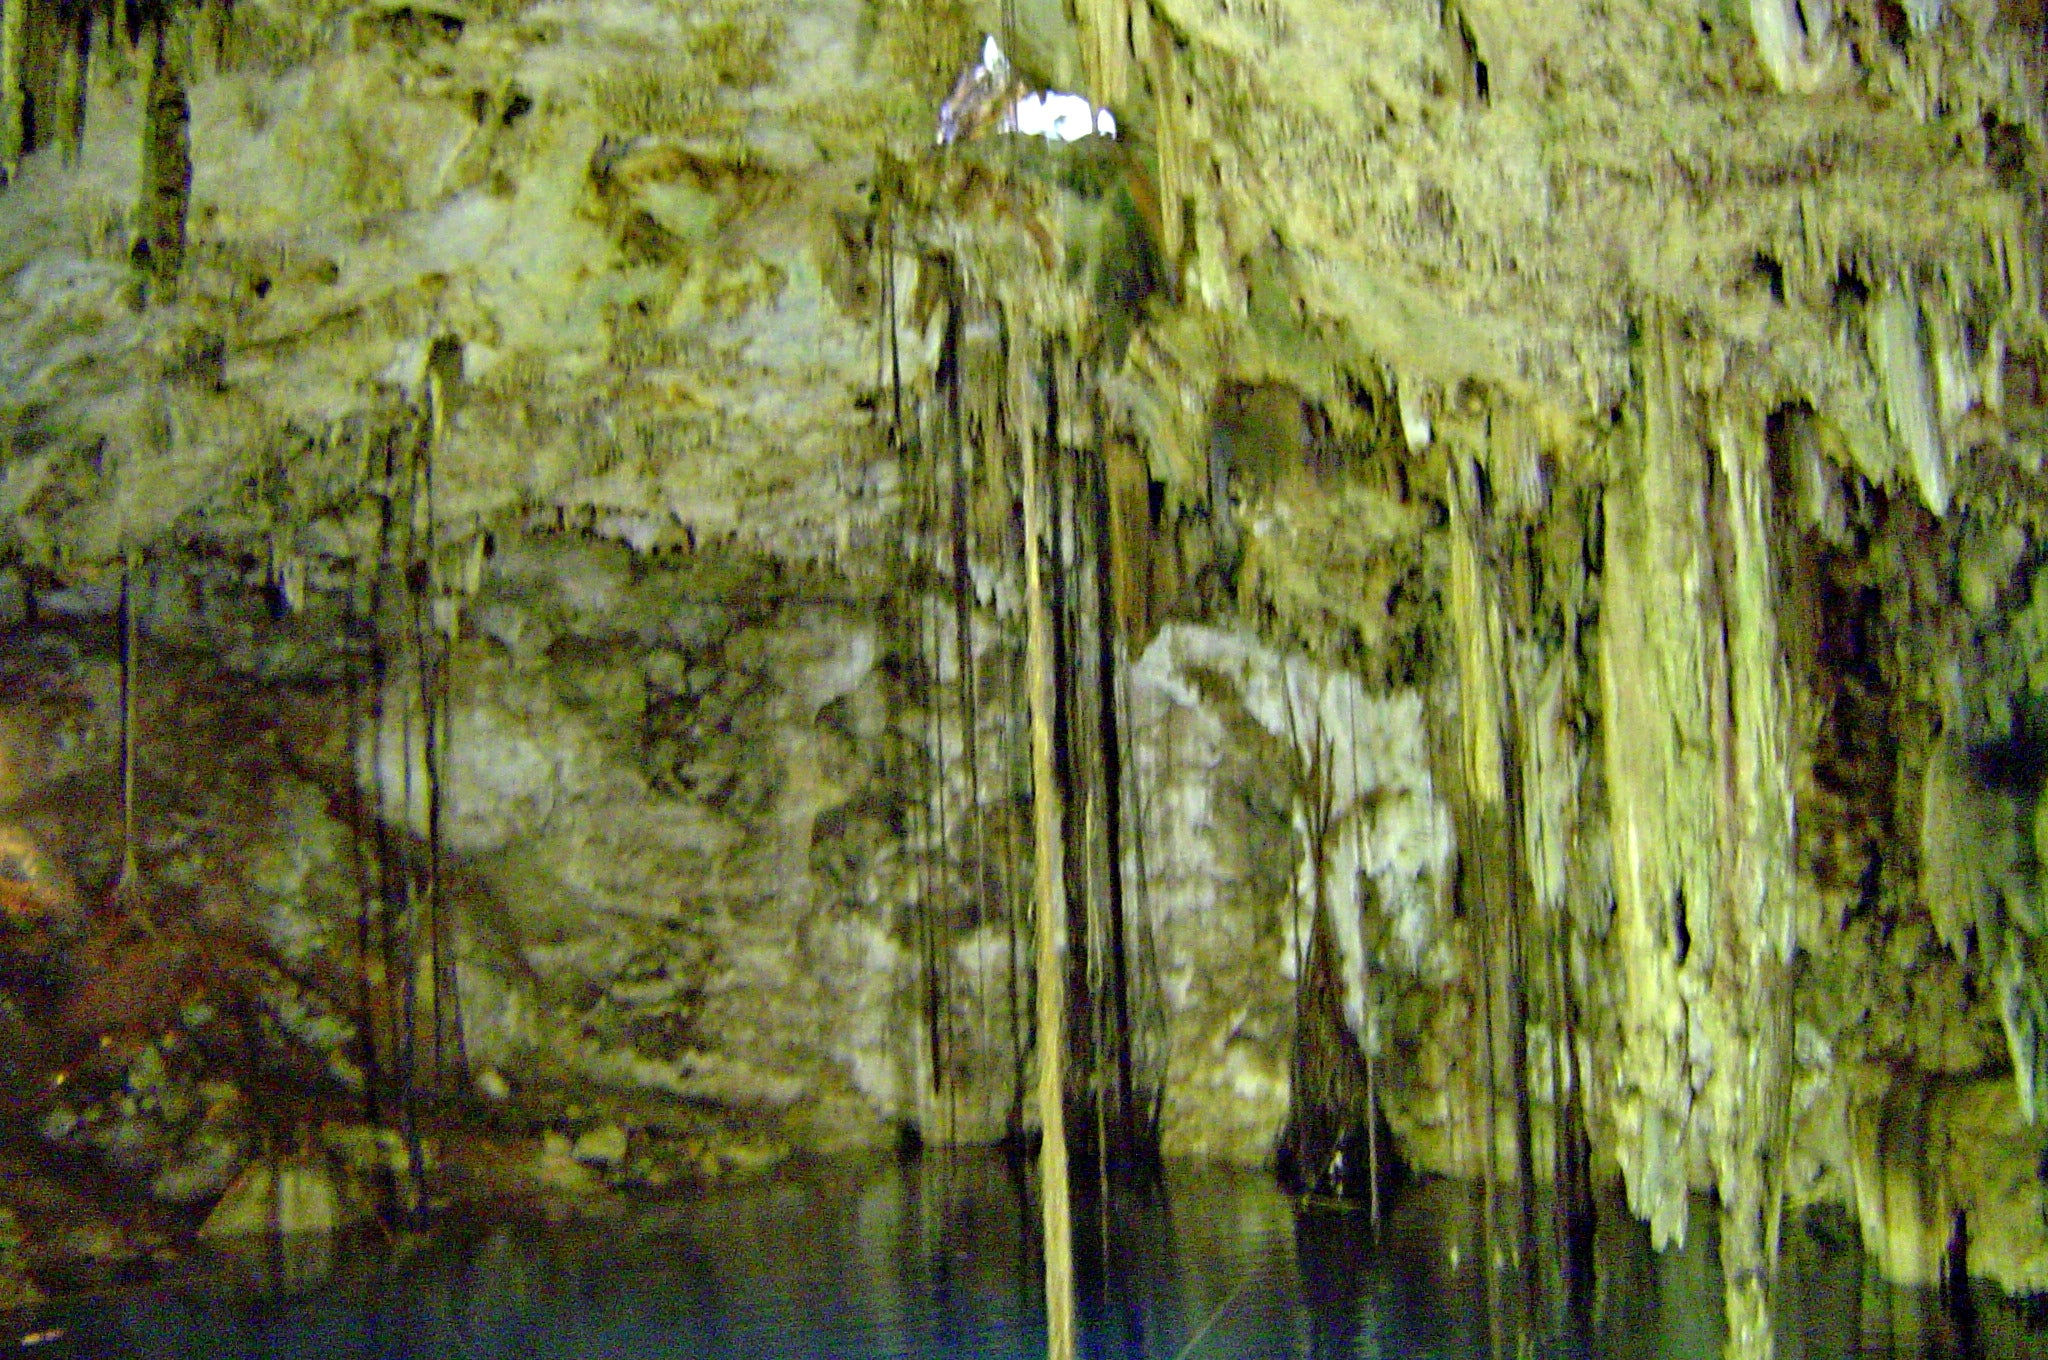 Humedal en Cenote Dzitnup/Cenote Xkekén